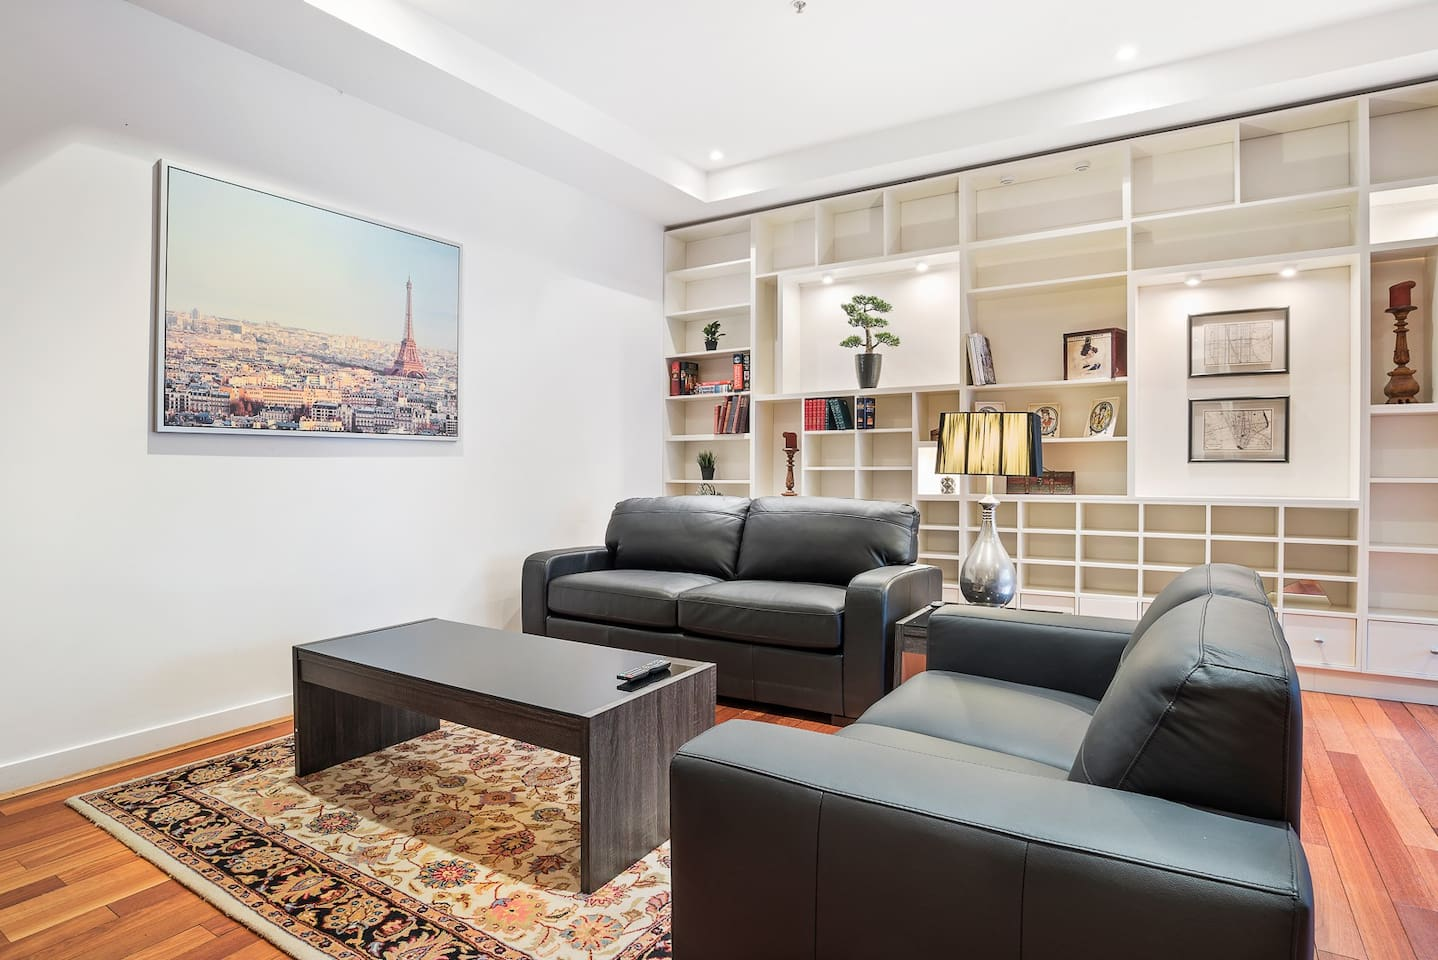 The apartment is filled with natural light located on a lower level of the building